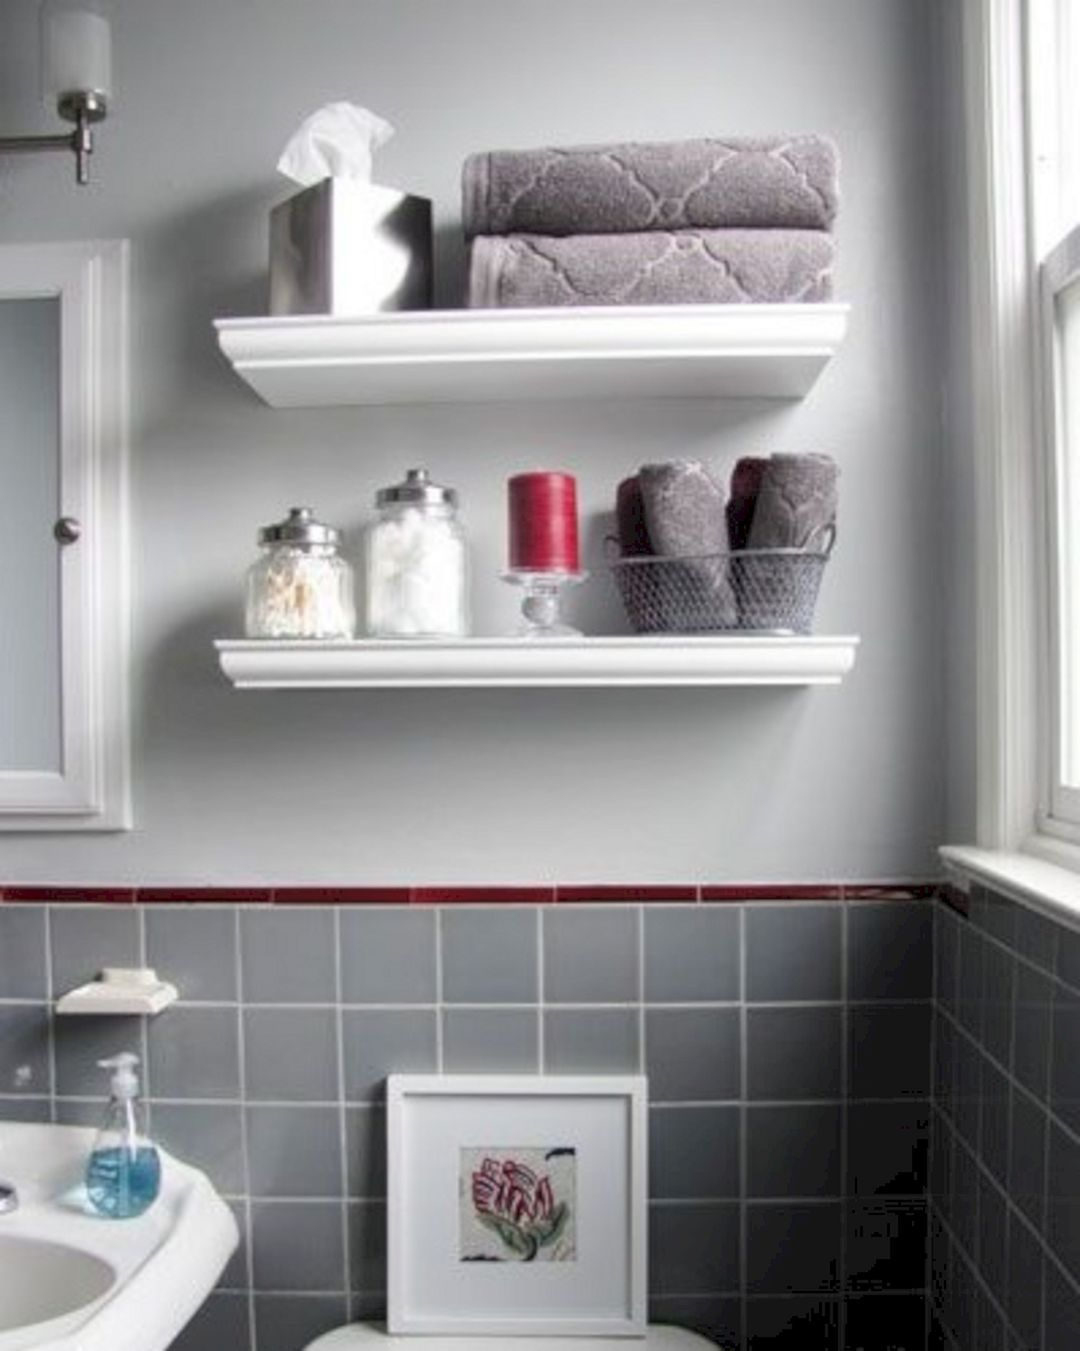 10 Beautiful Corner Wall Shelves Ideas For Your Bathroom Small